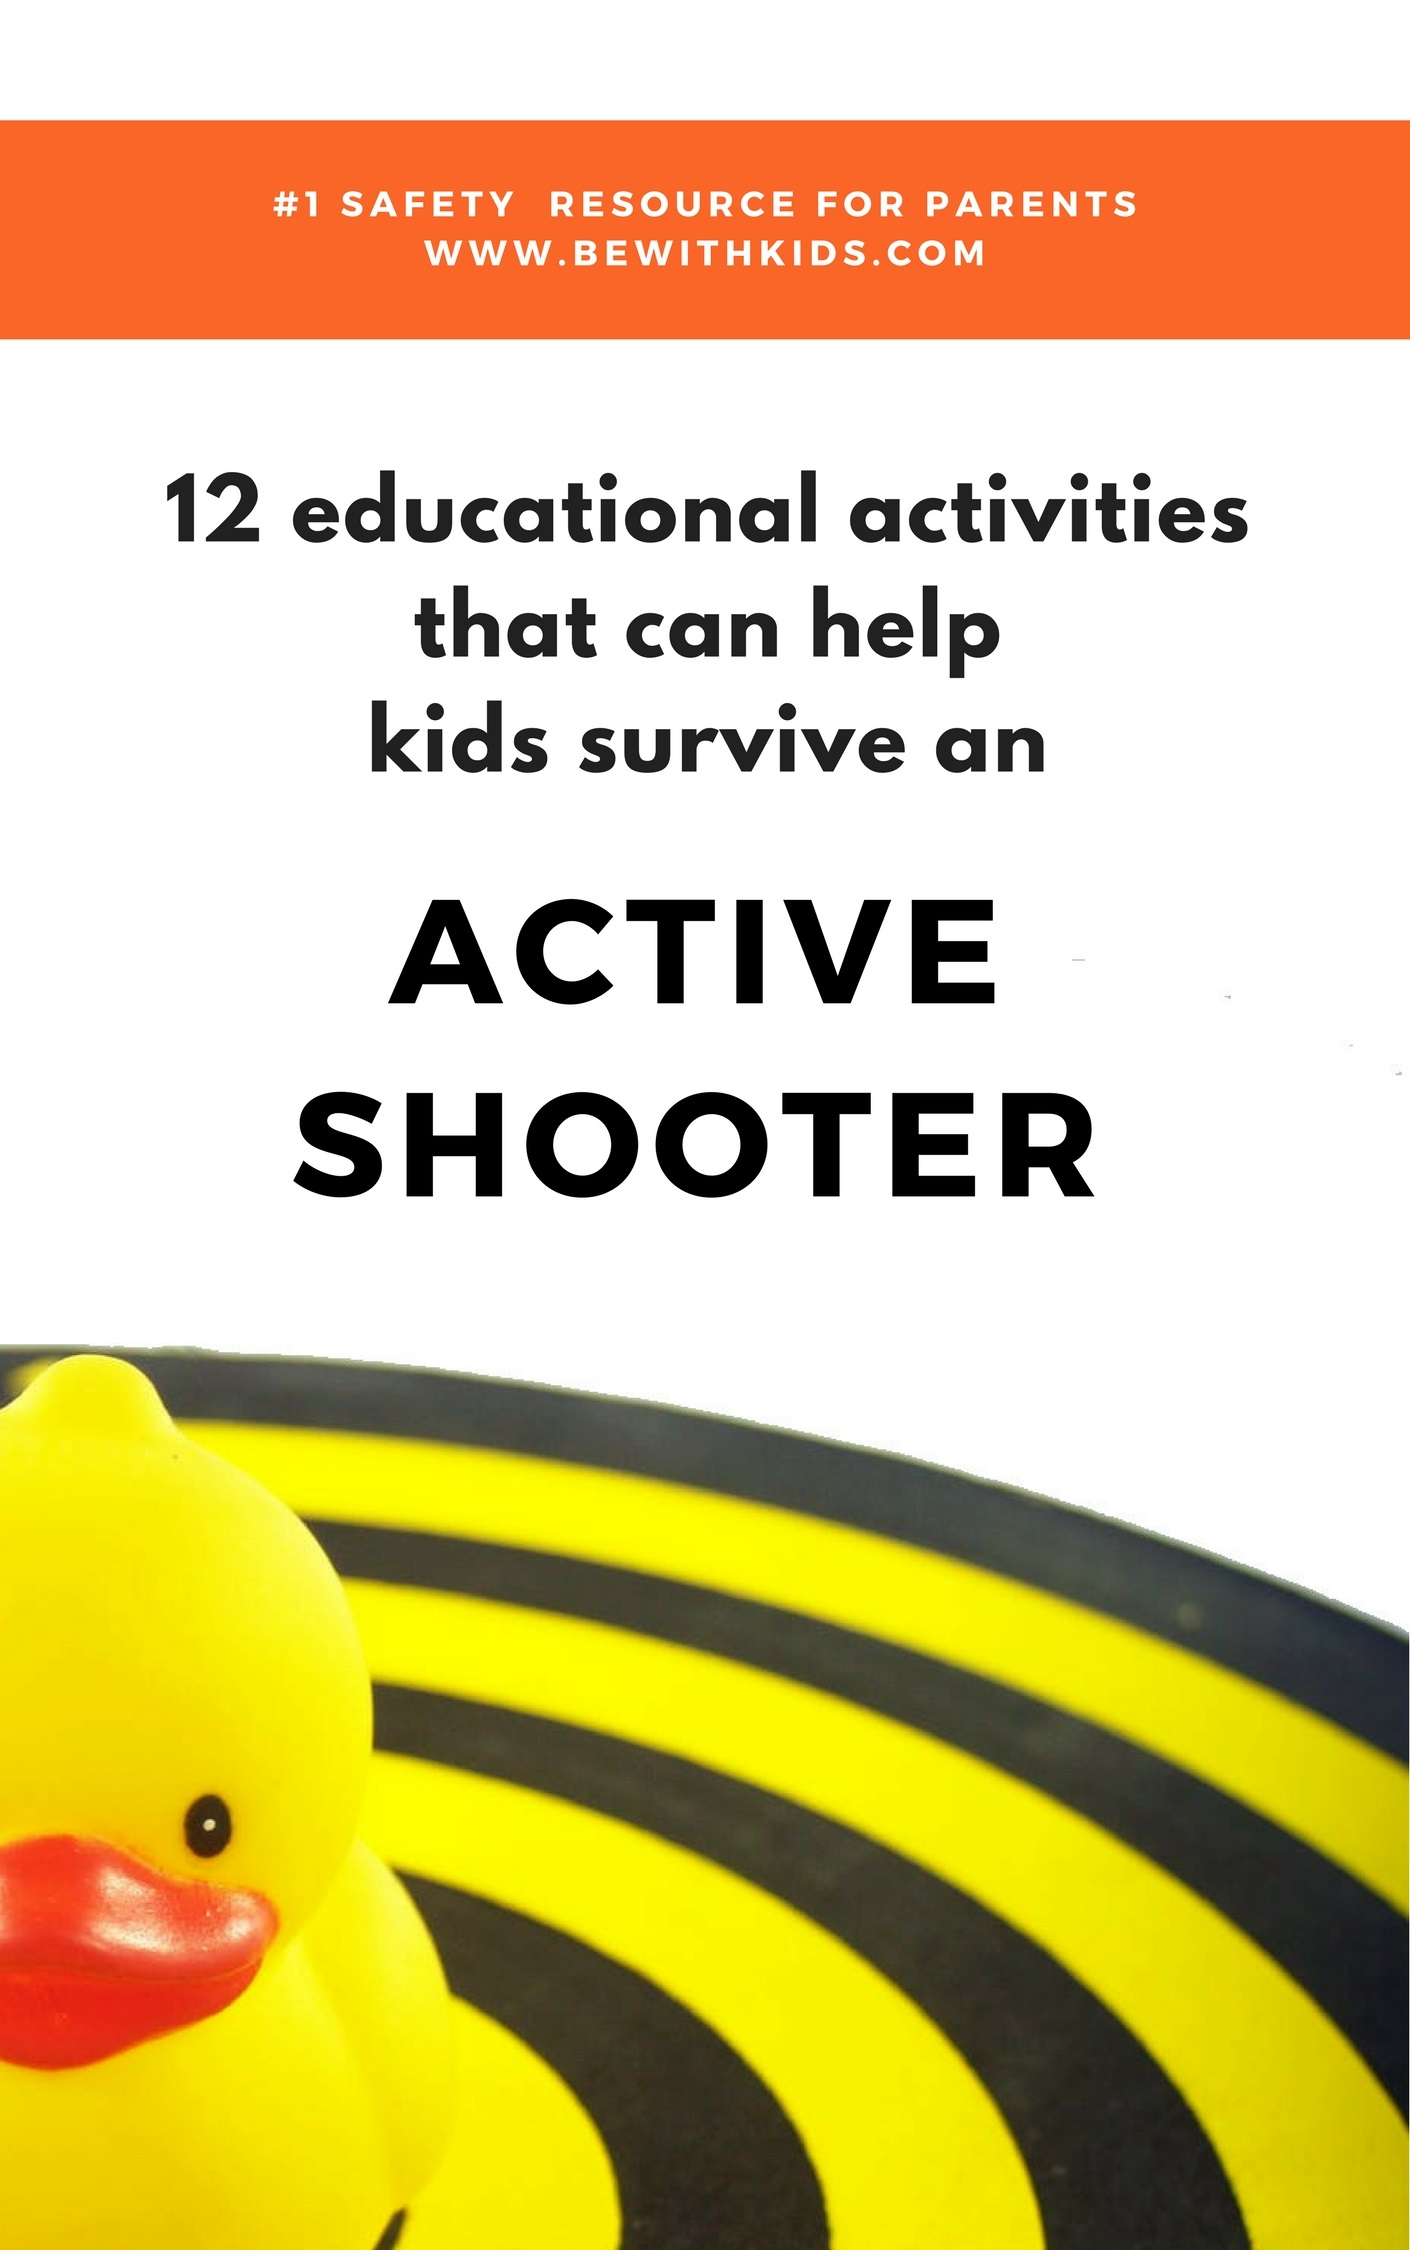 Active shooter training - 12 activities for school kids that can help survive (run-hide-fight)